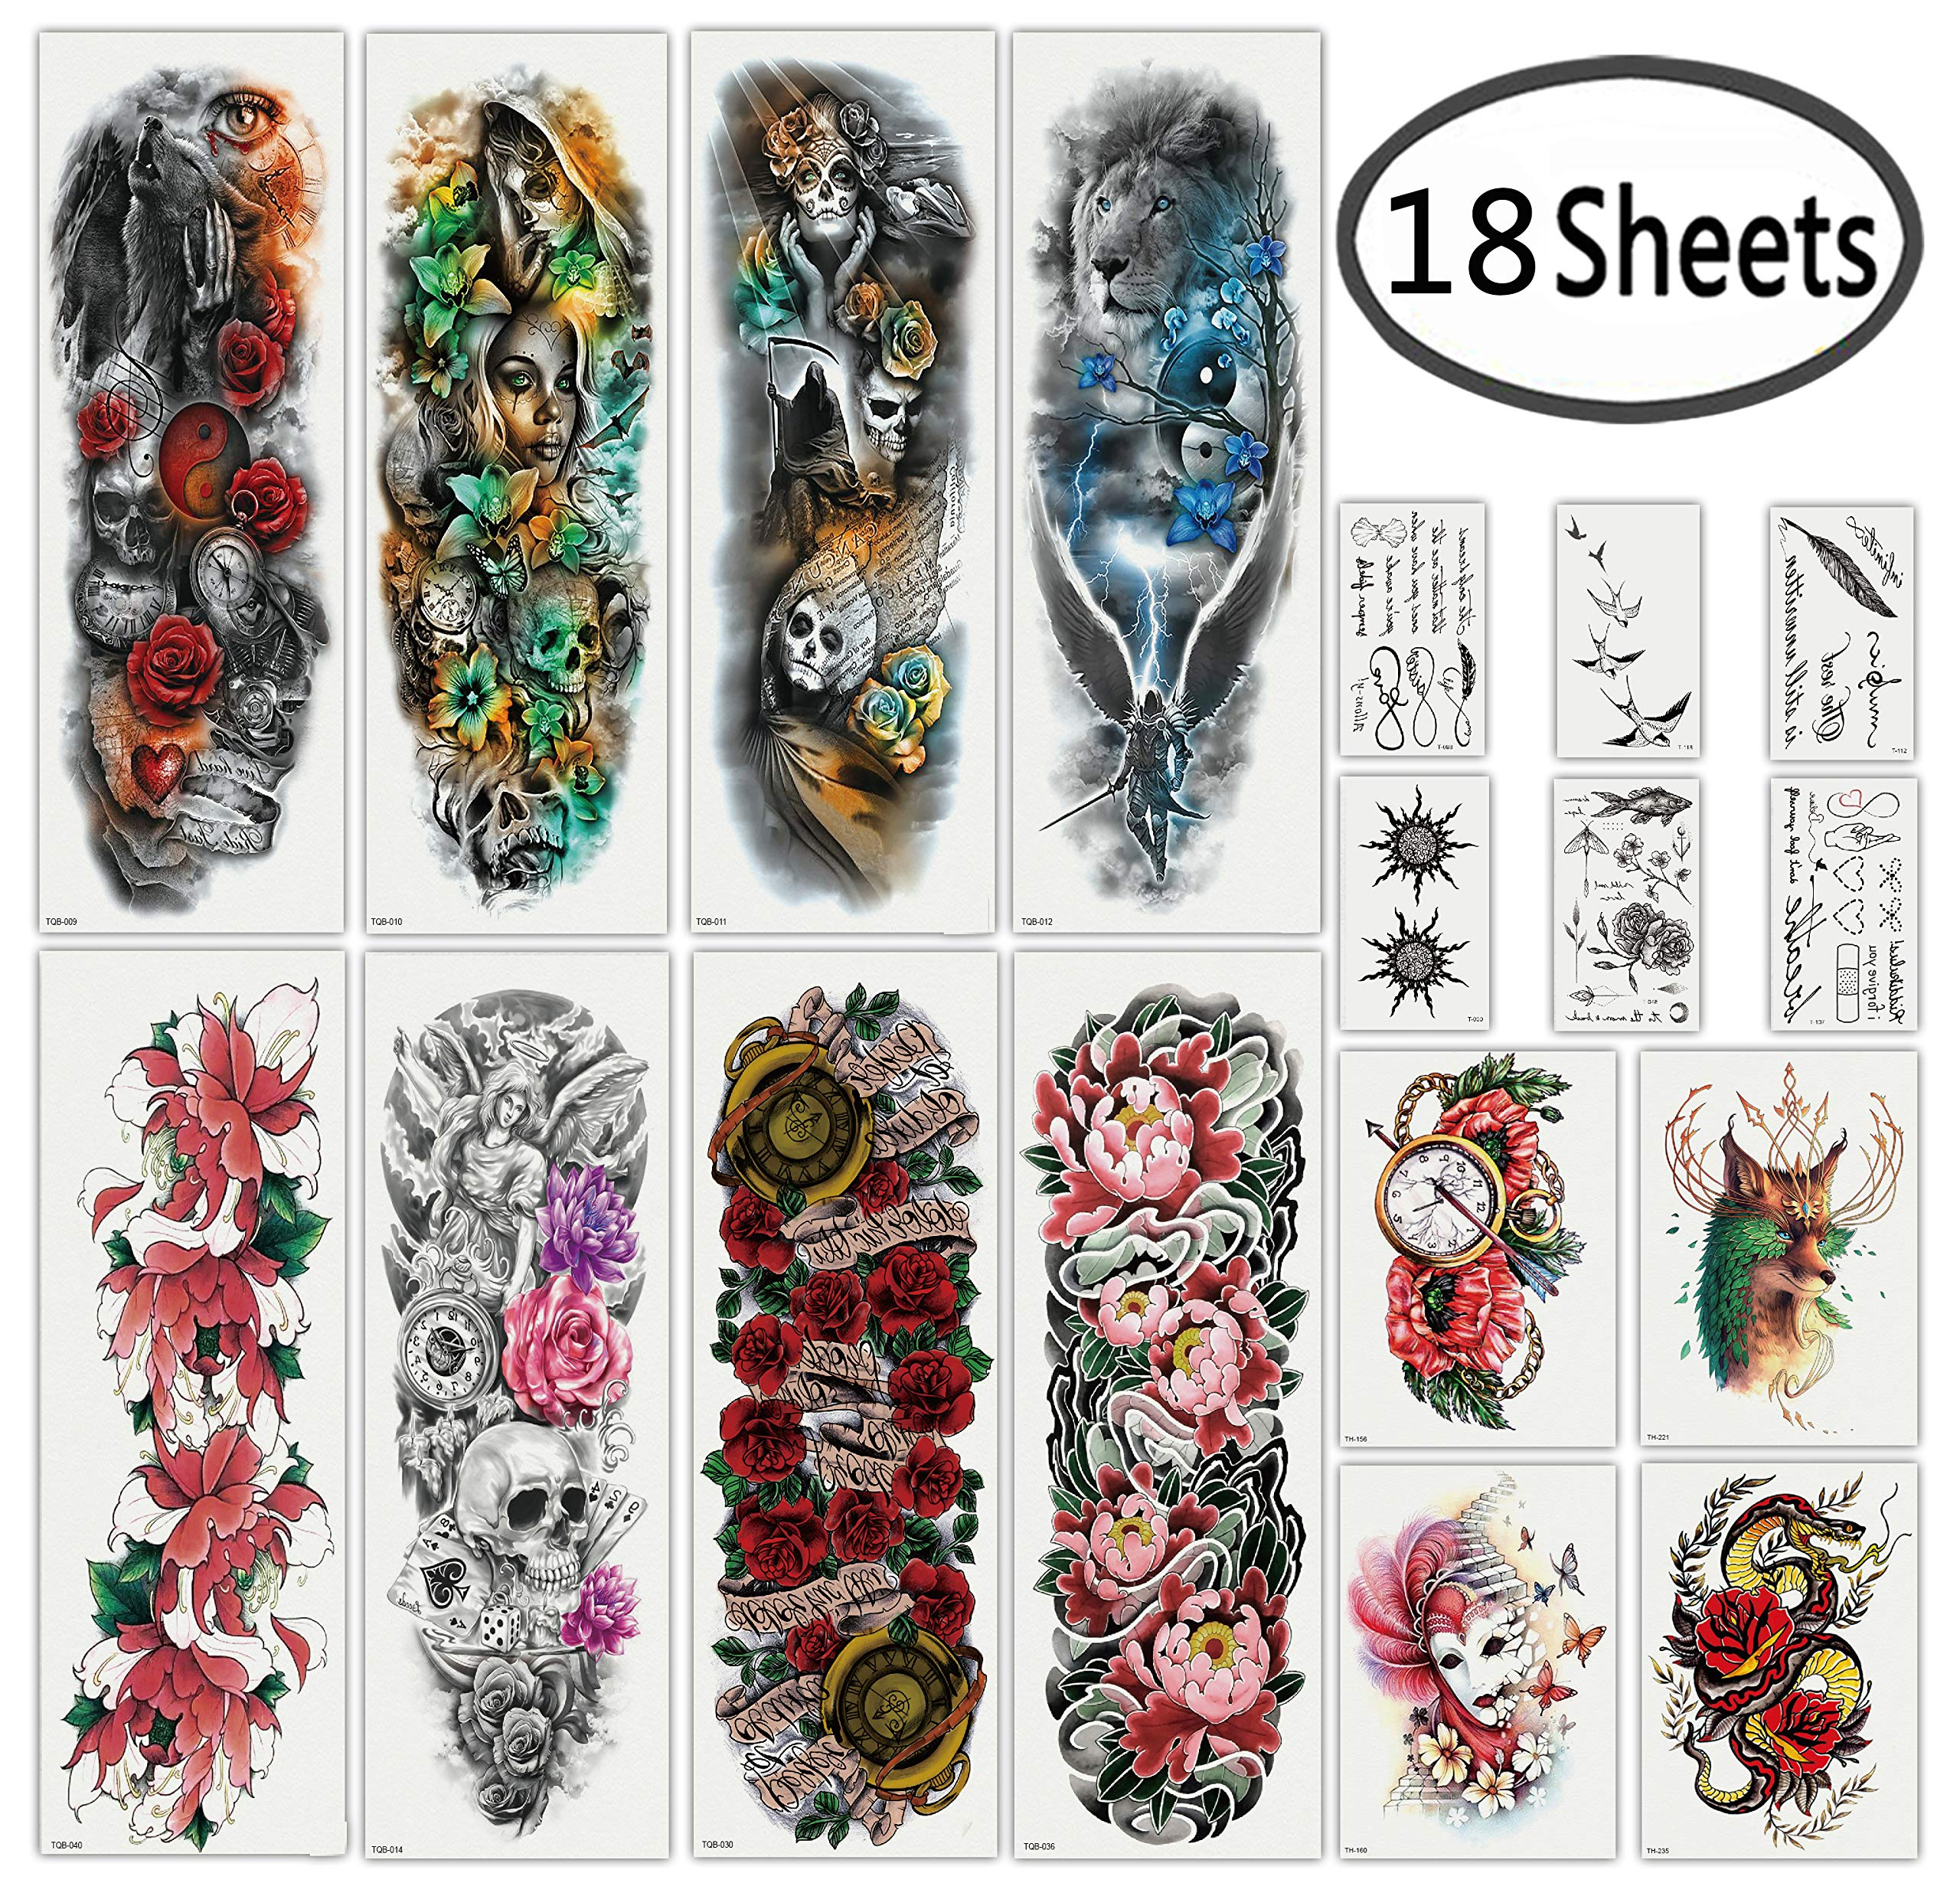 98132a42a0d4e Amazon.com : DaLin Extra Large Full Arm Temporary Tattoos and Half Arm  Tattoo Sleeves for Men Women, 18 Sheets (Collection 2) : Beauty